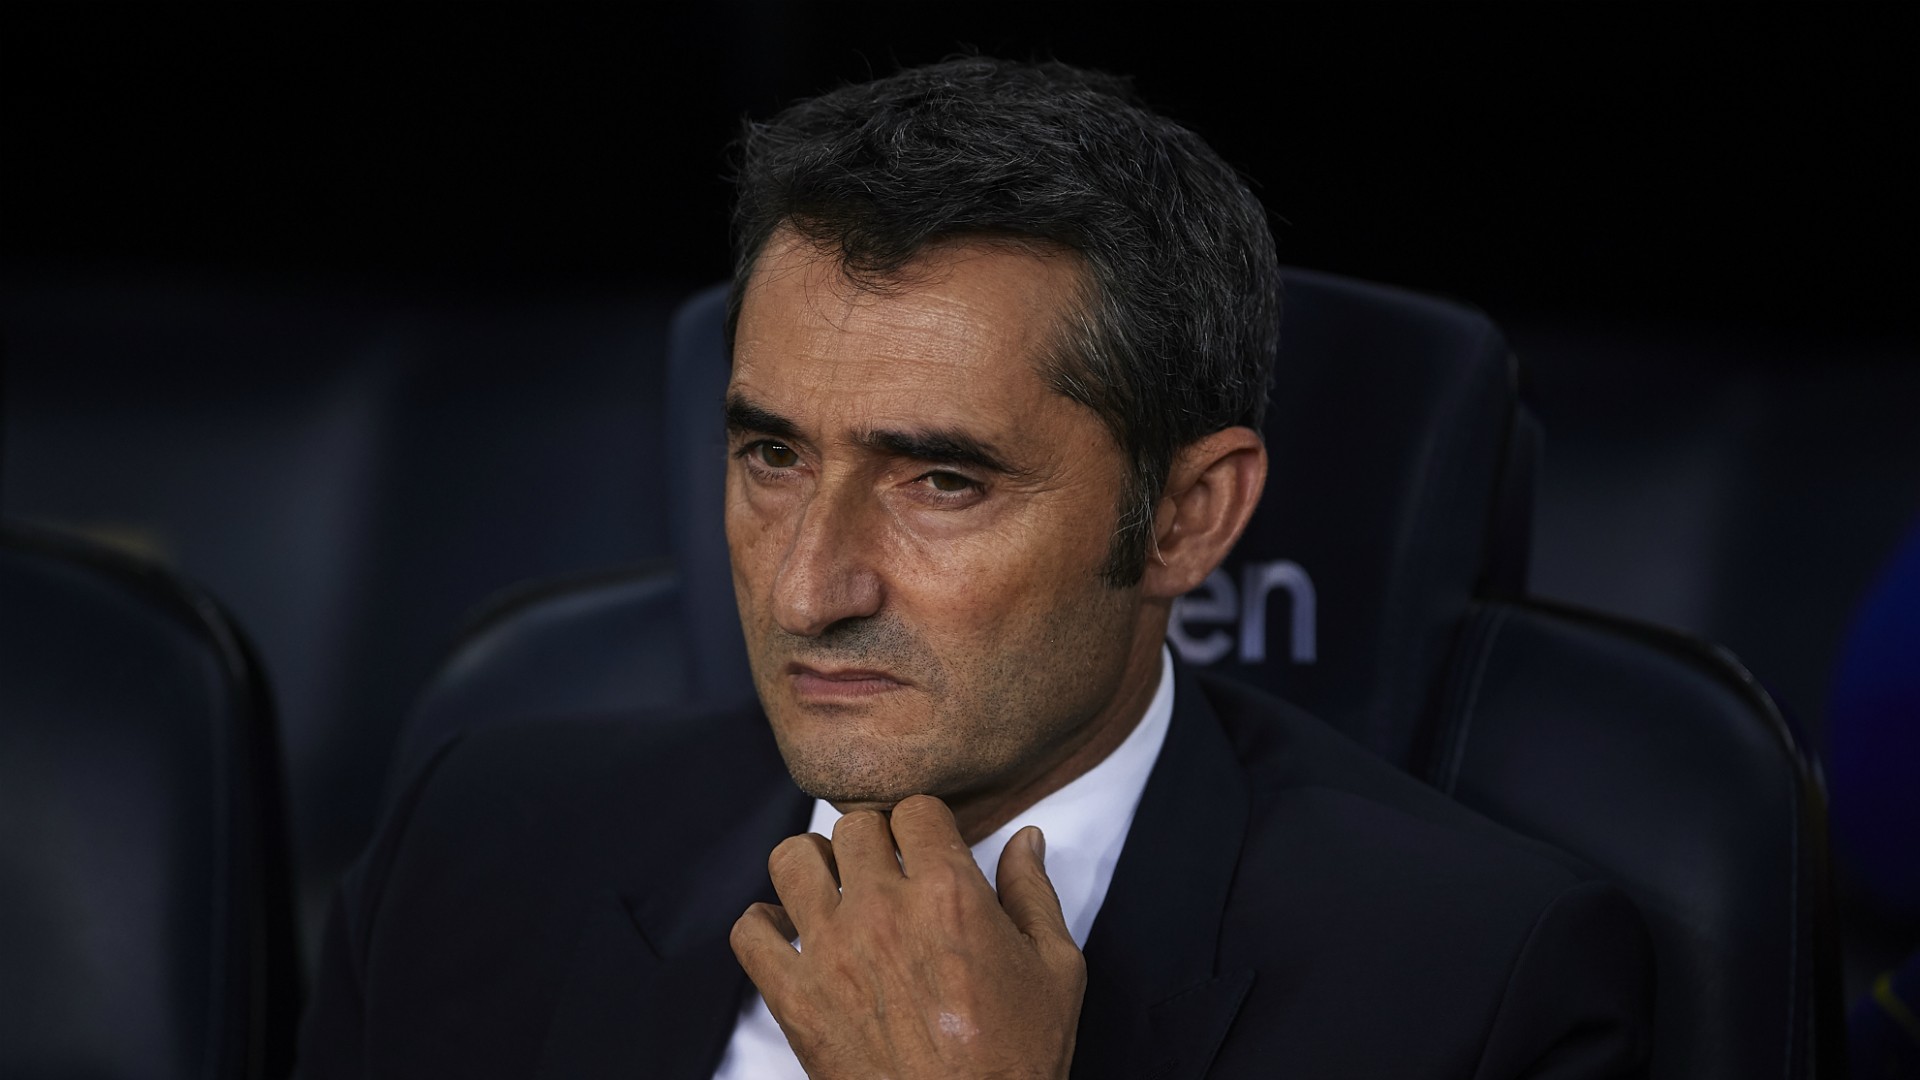 It's fashionable to not agree on political issues - Barca boss Valverde wants swift Clasico resolution